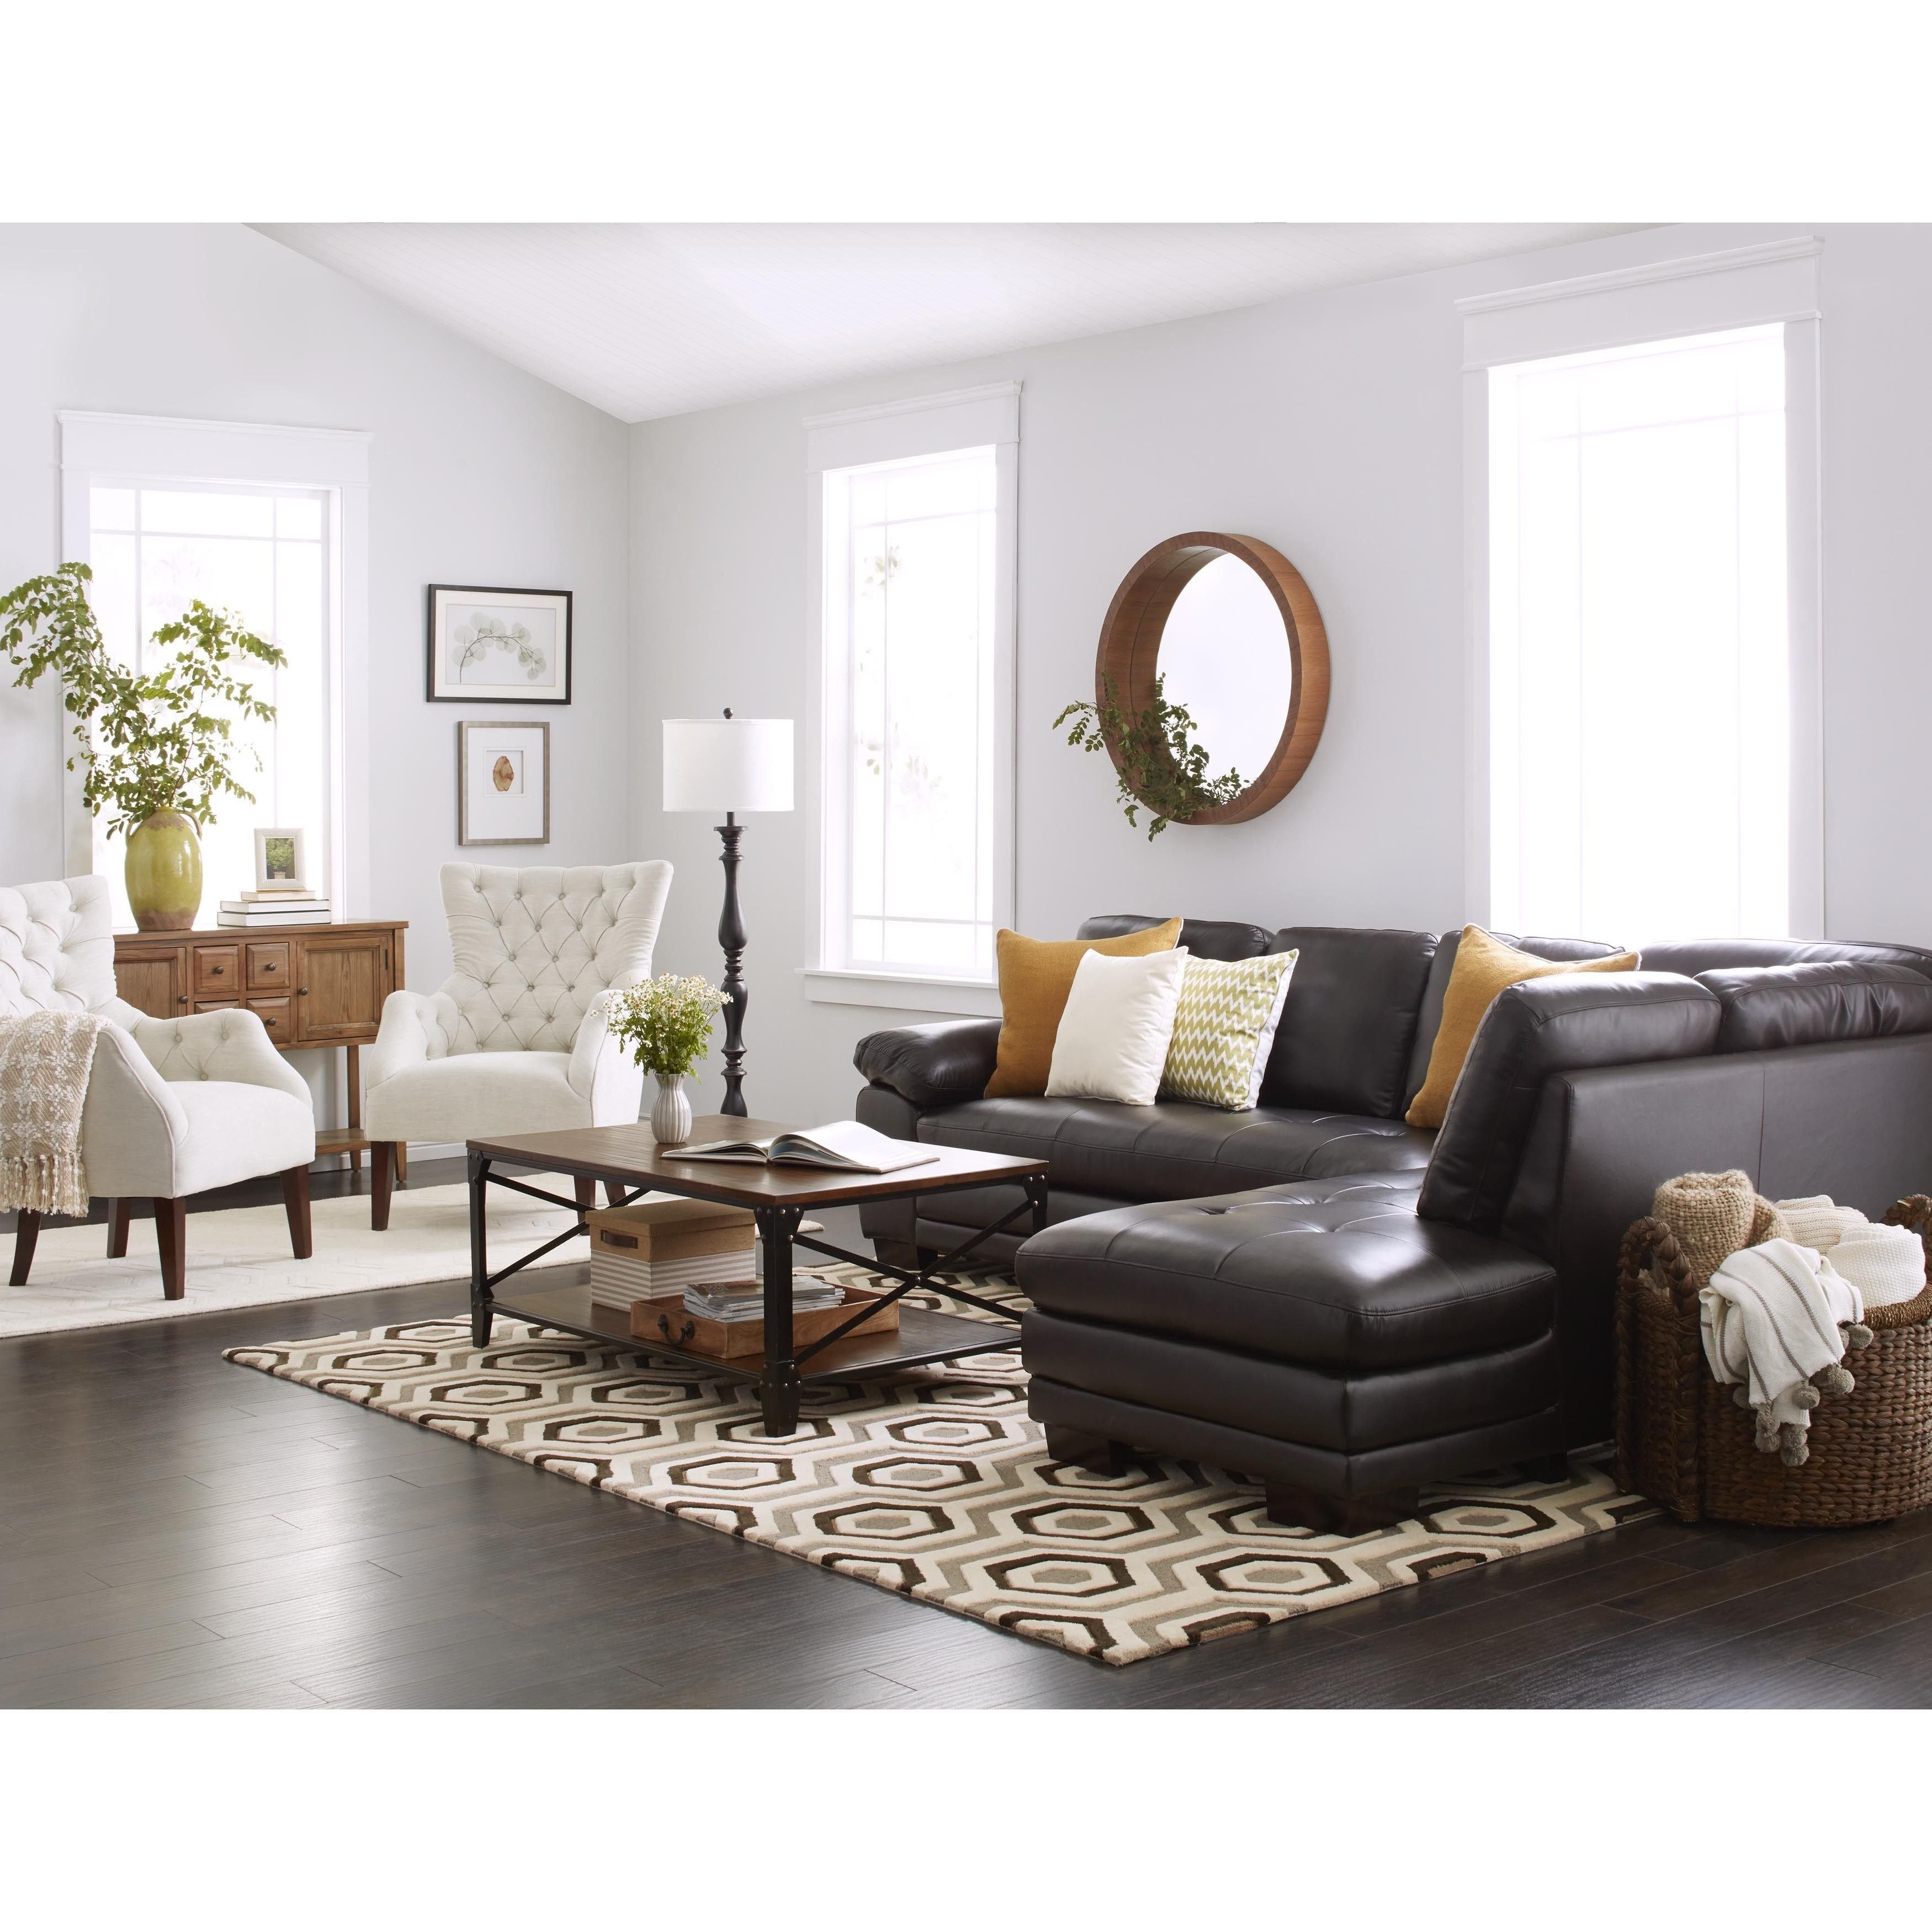 Brown sofa Living Room Decor Abbyson Living Devonshire Brown Leather Tufted Sectional